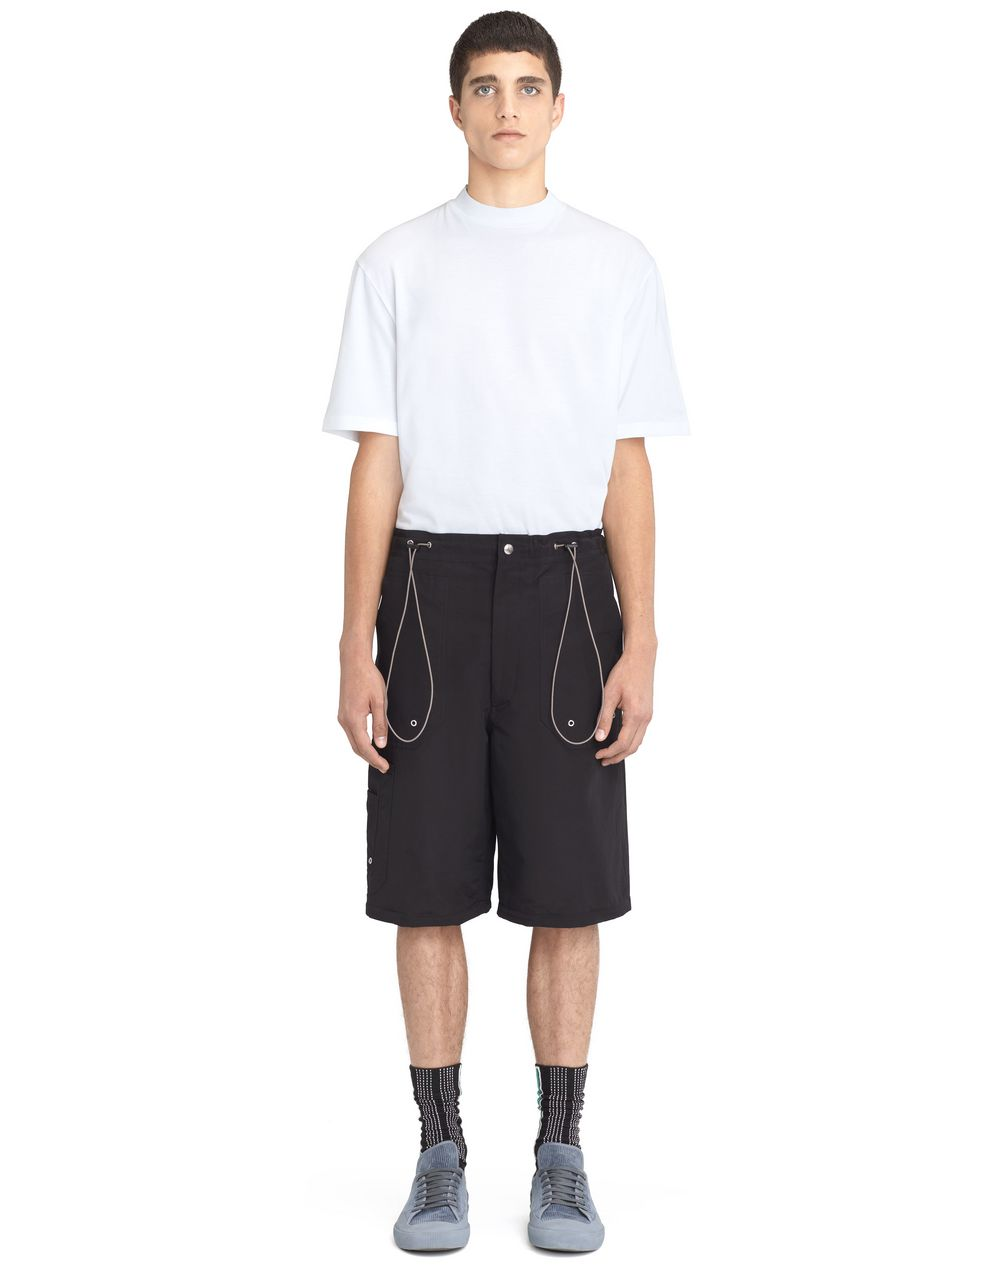 BLACK SHORTS WITH ELASTIC WAISTBAND  - Lanvin